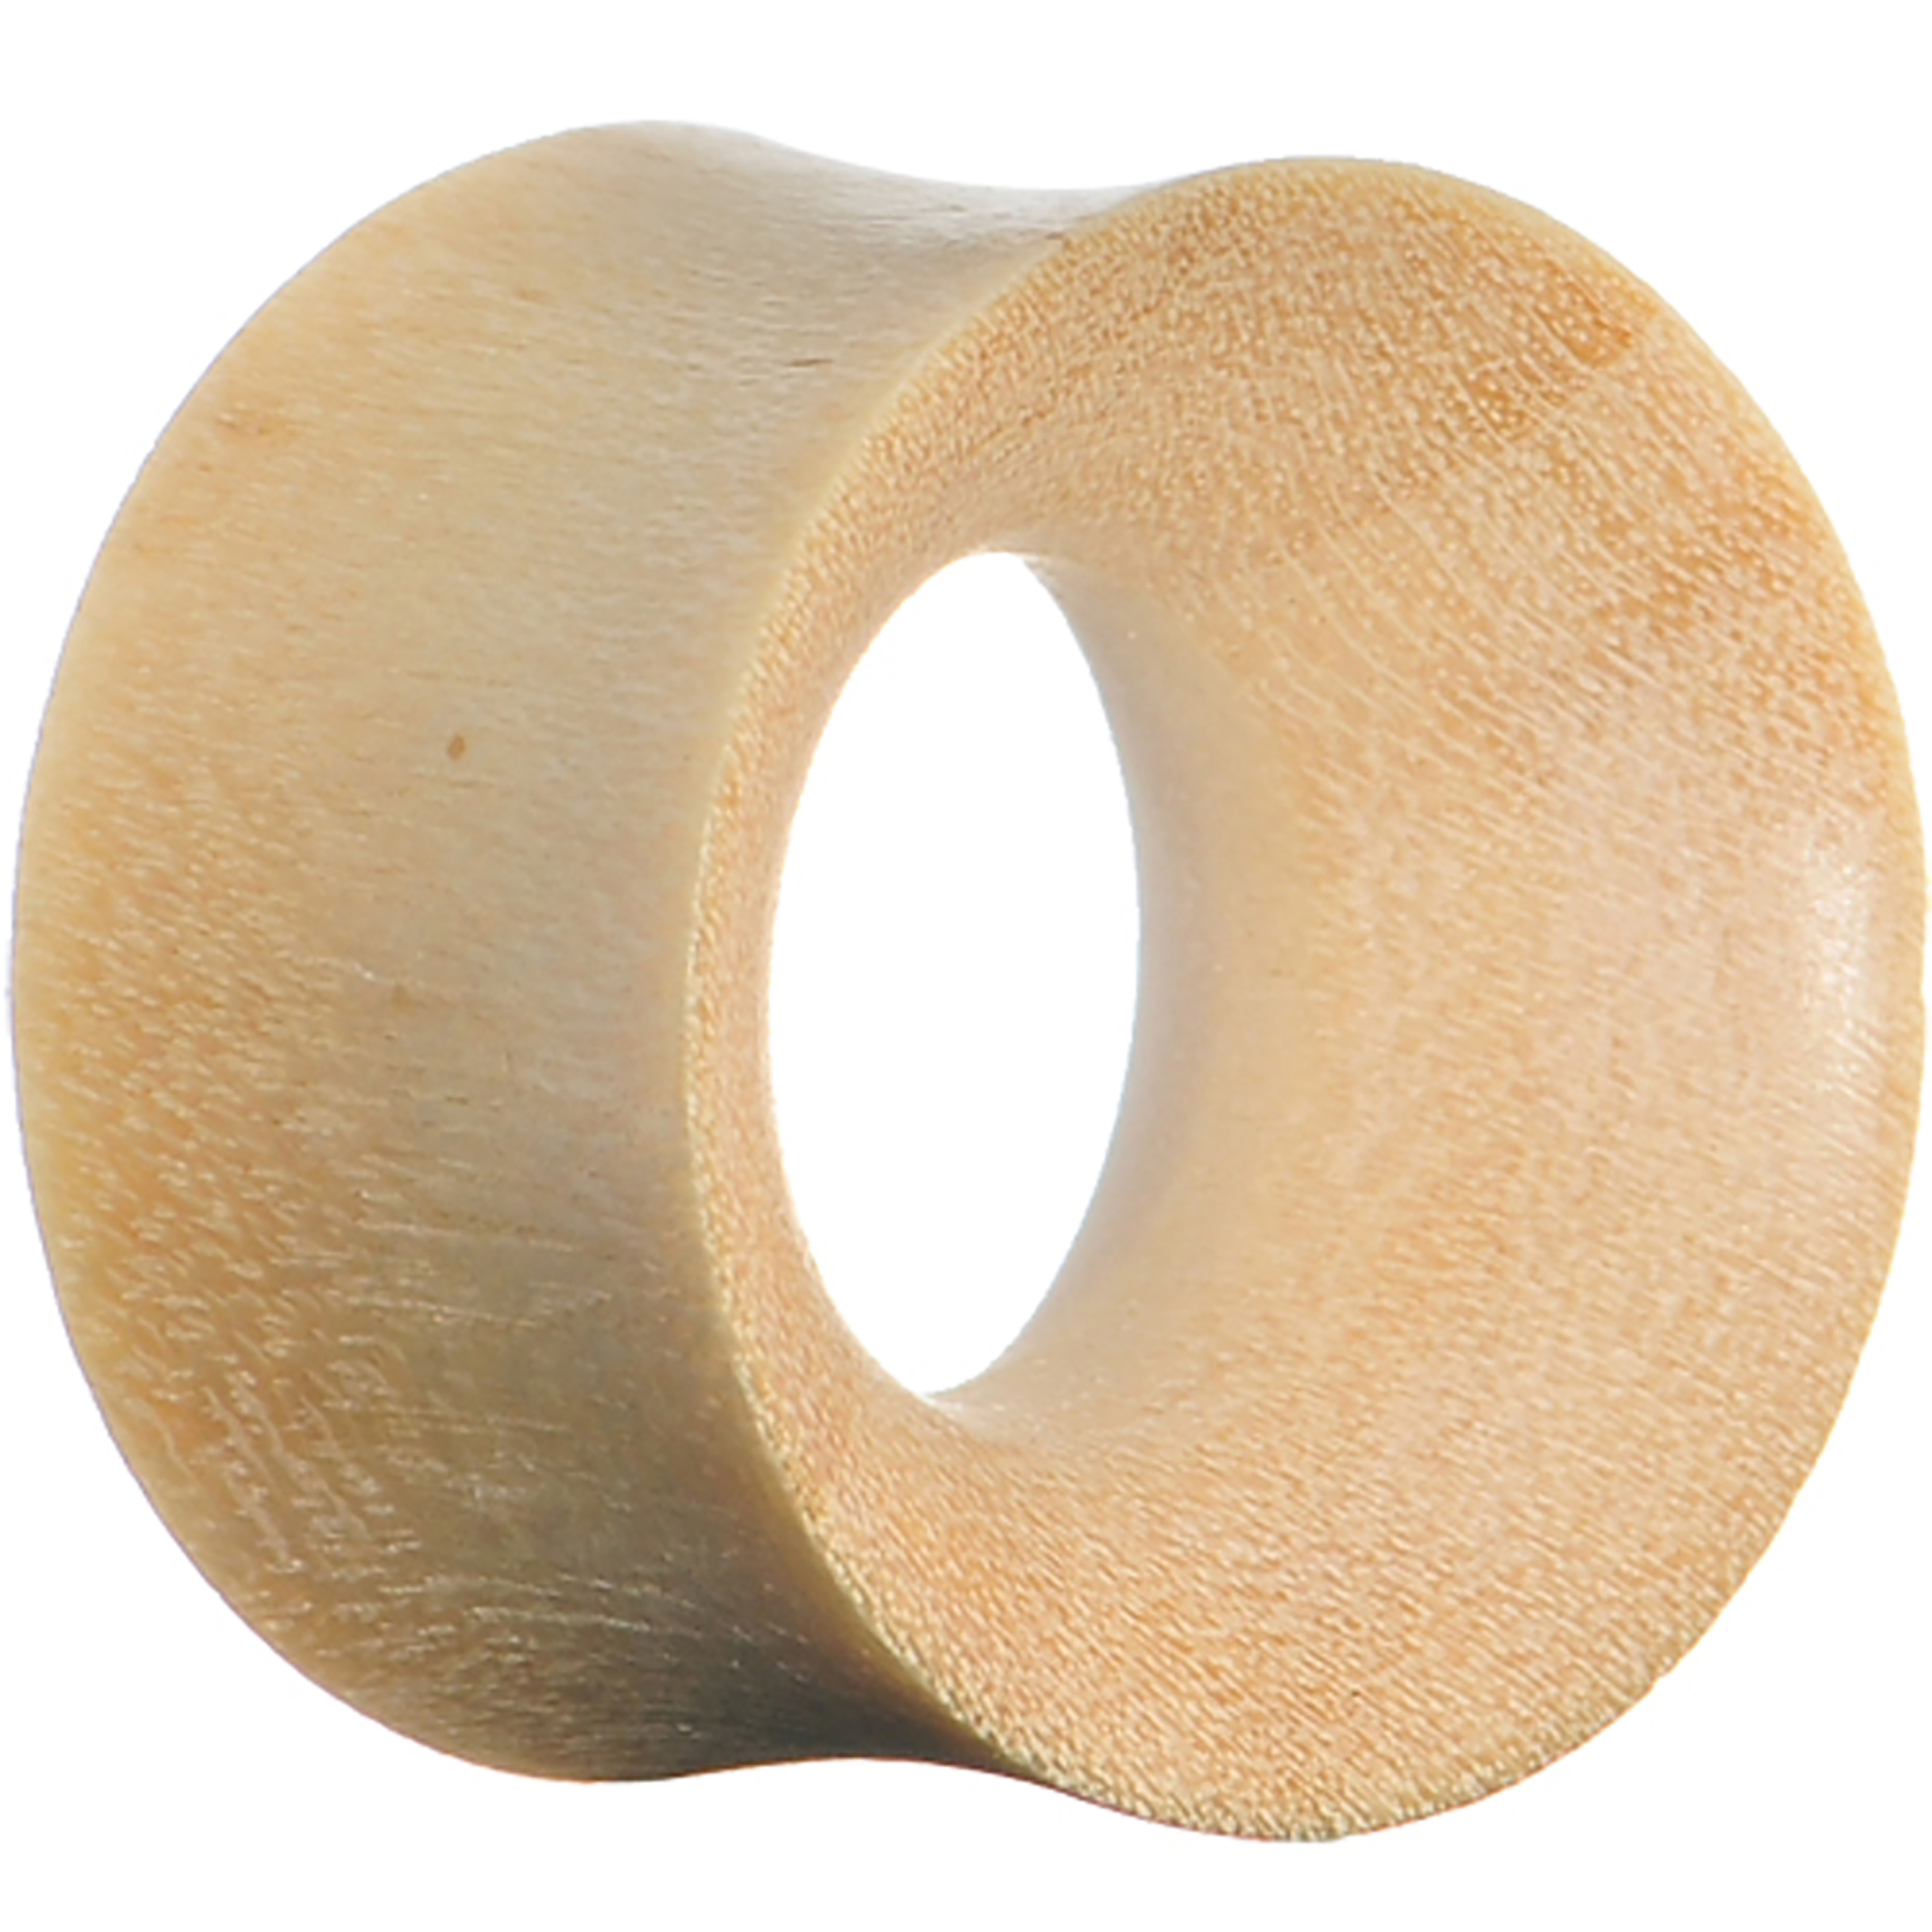 "3/4"" Gauge White Crocodile Wood Ear Tunnel (1 Piece)"